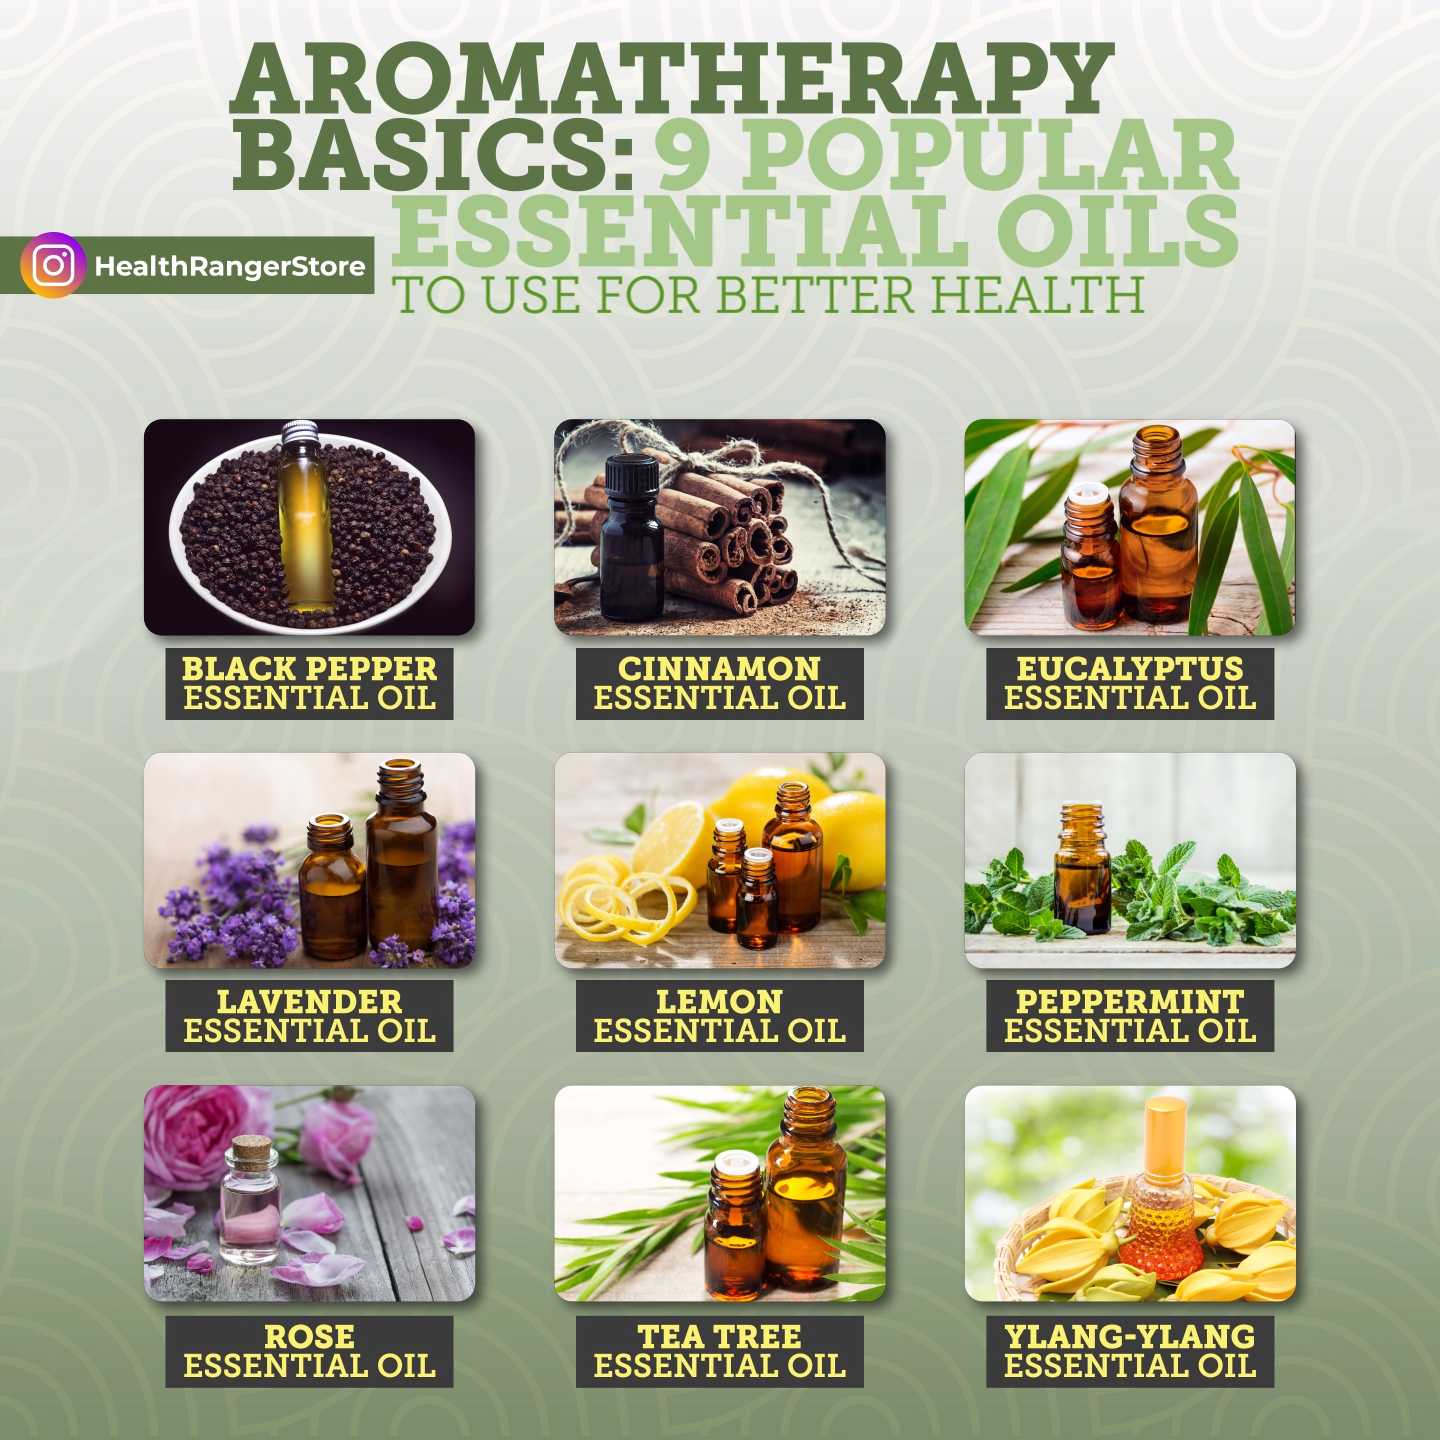 The benefits that aromatherapy offers range from physical